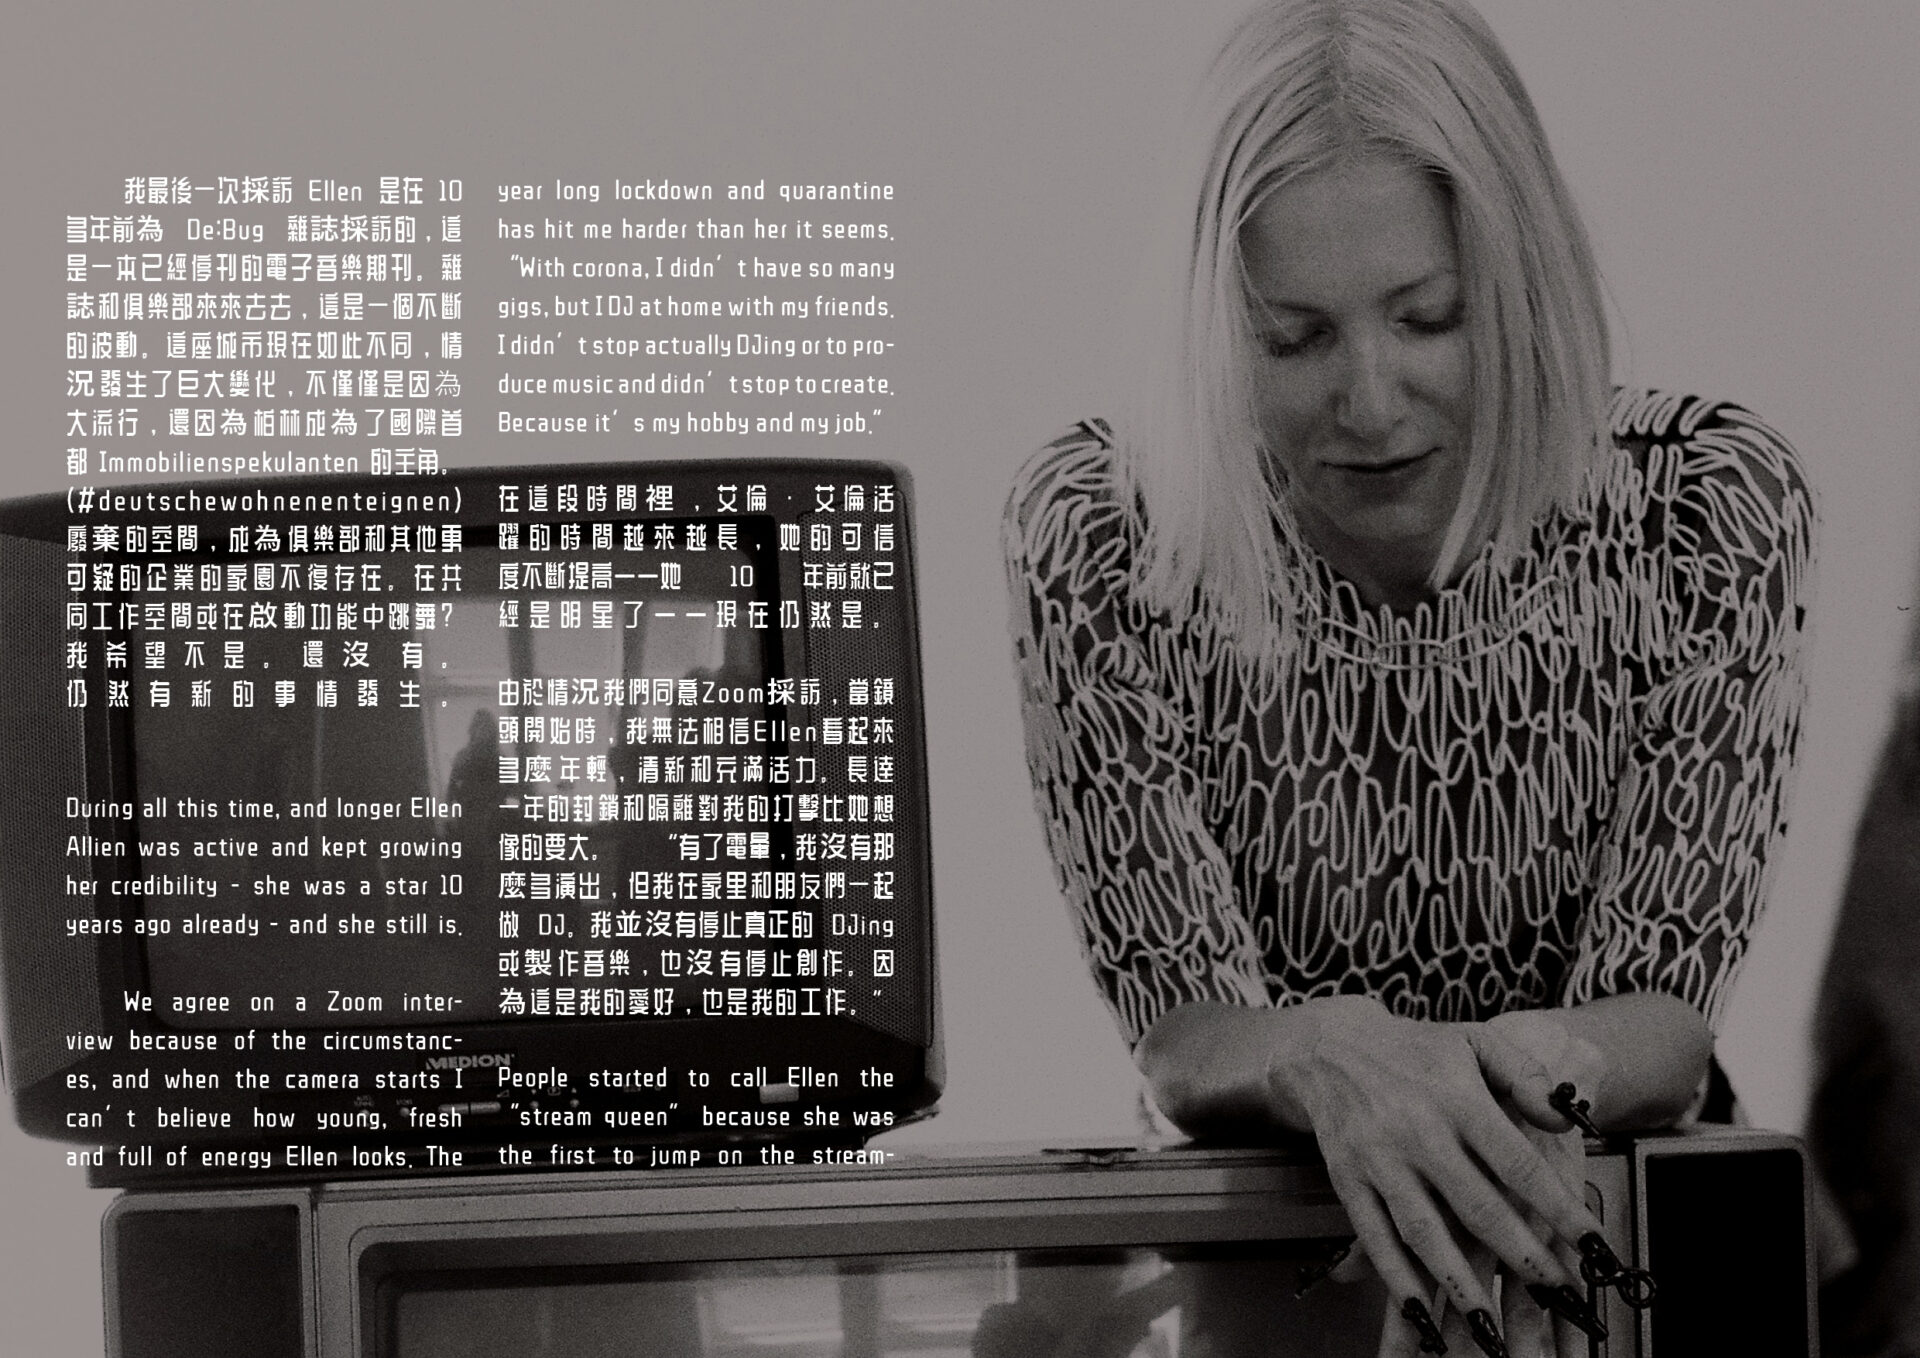 MEET:ELLEN ALLIEN interview by Micheal Aniser and photos / styling / set design by KEYI STUDIO. Hair by Attila Kenyeres. Make up by Leana Ardeleanu. Nails by Thams.